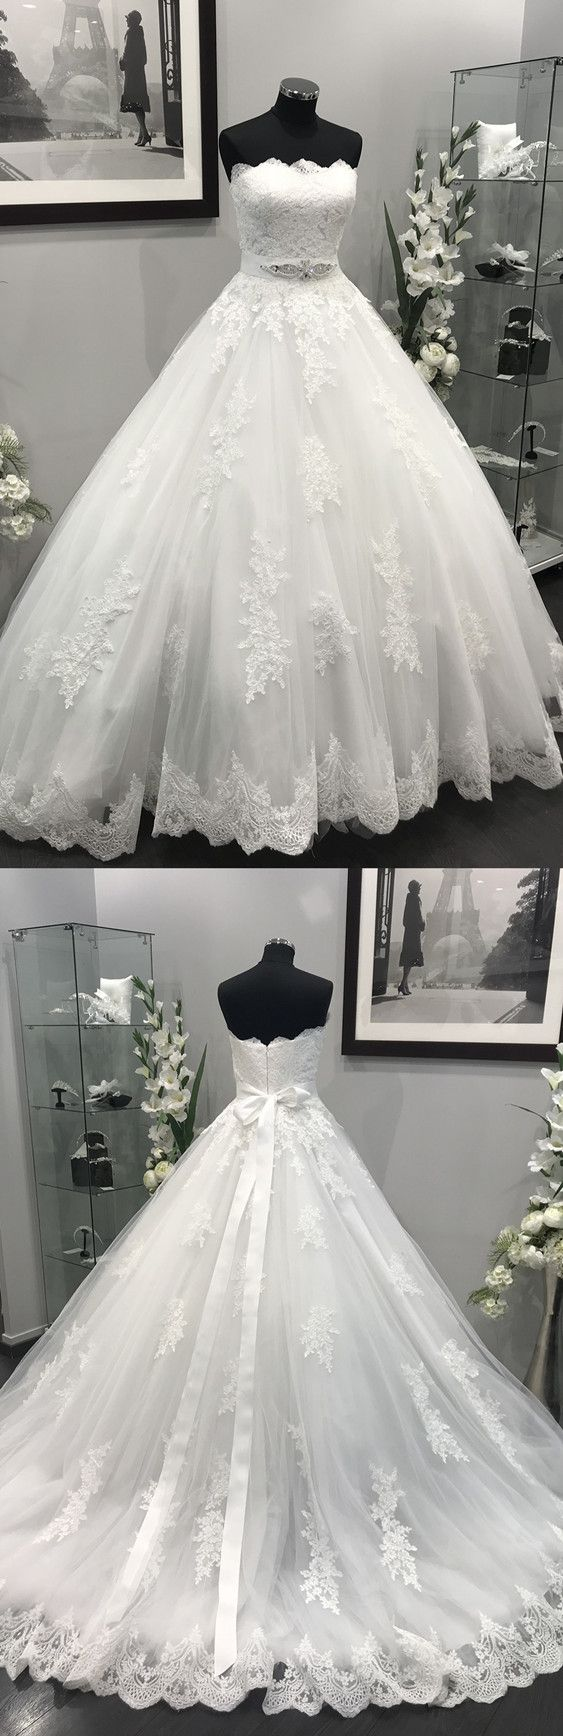 Lace Appliques Crystal Wedding Dress,Beaded Sashes Tulle Wedding Dresses Ball Gowns